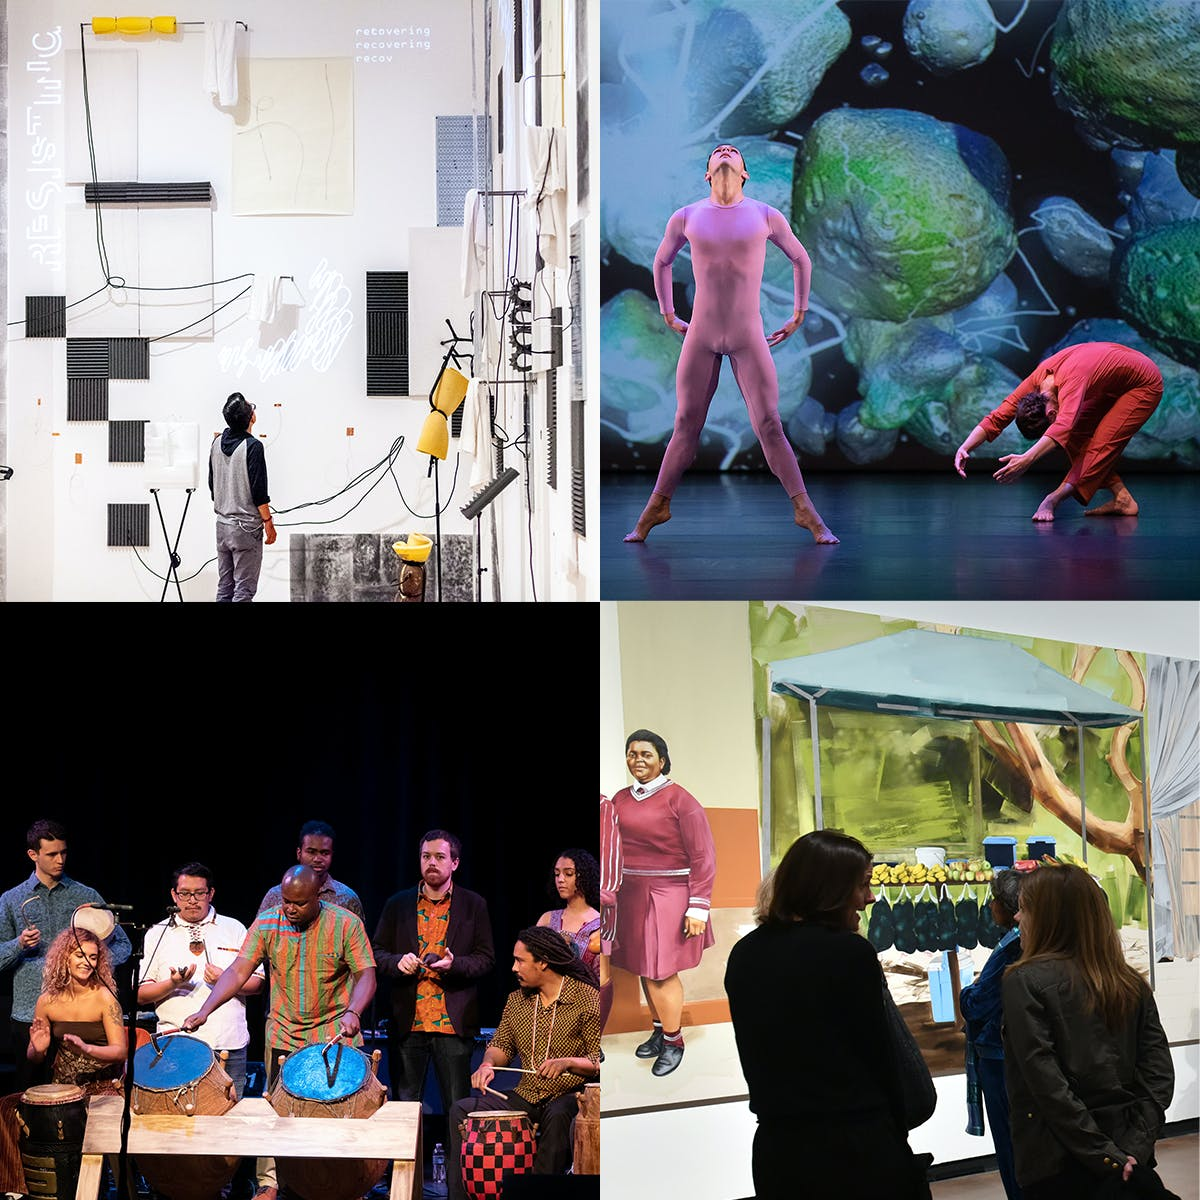 A four image grid showing different examples of the arts at UCLA.